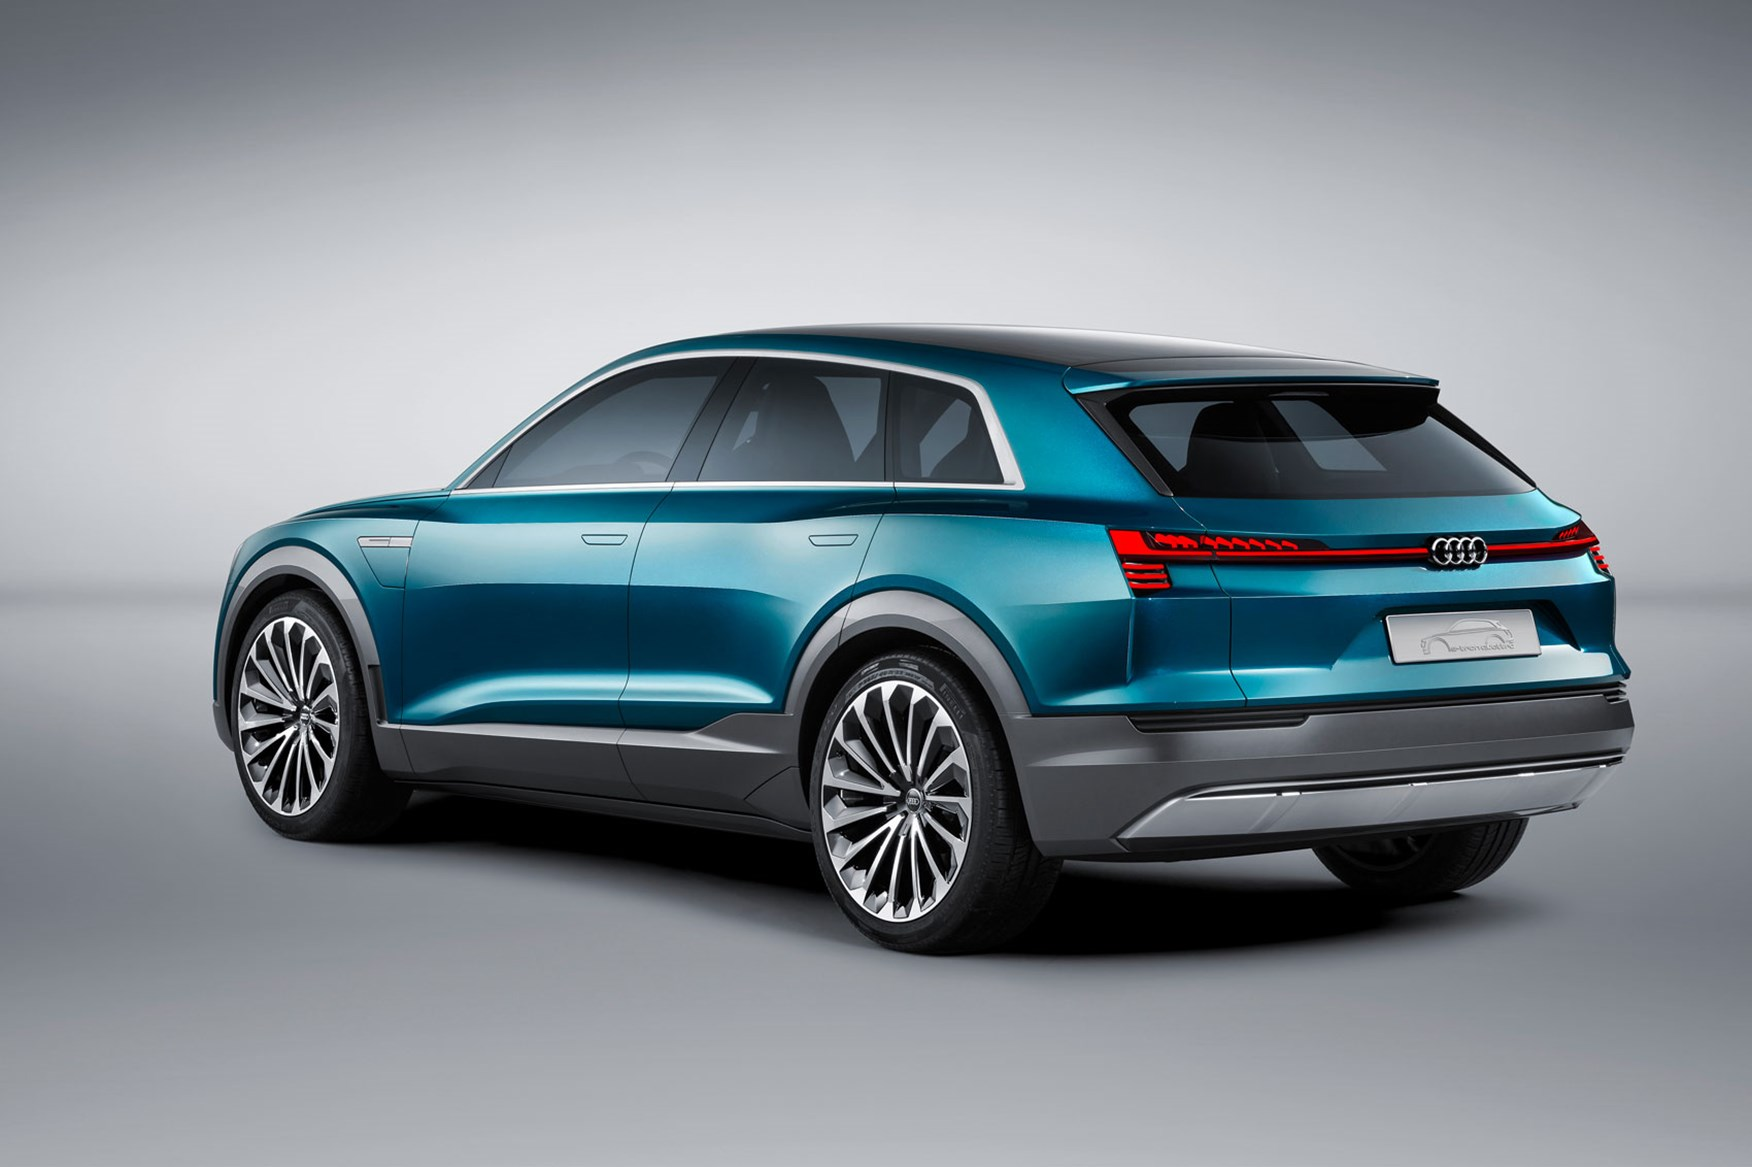 Audi E-tron SUV: Tesla-style Q6 crossover bows in Frankfurt by CAR Magazine